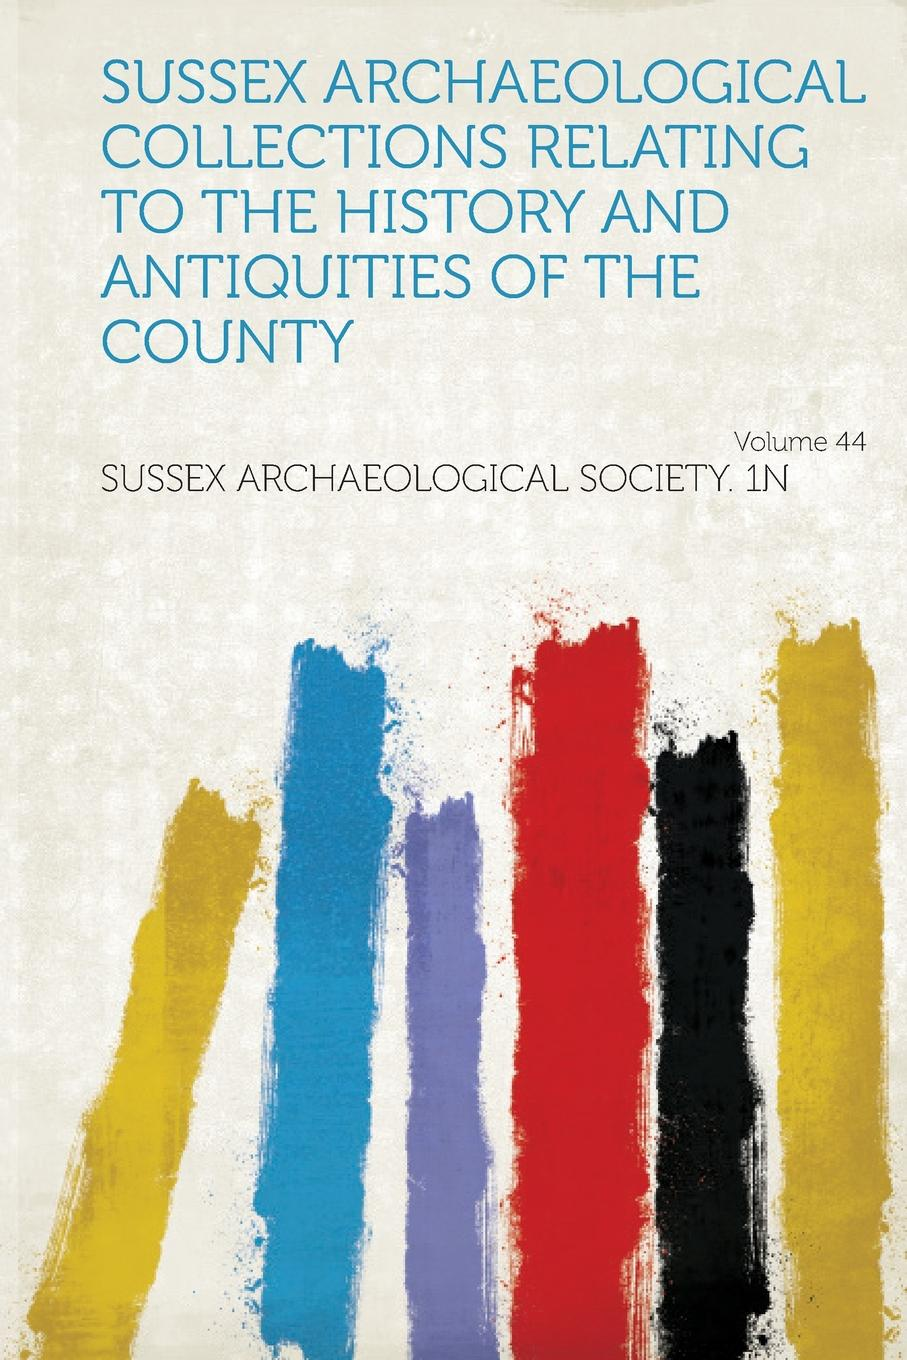 Sussex Archaeological Collections Relating to the History and Antiquities of the County Volume 44